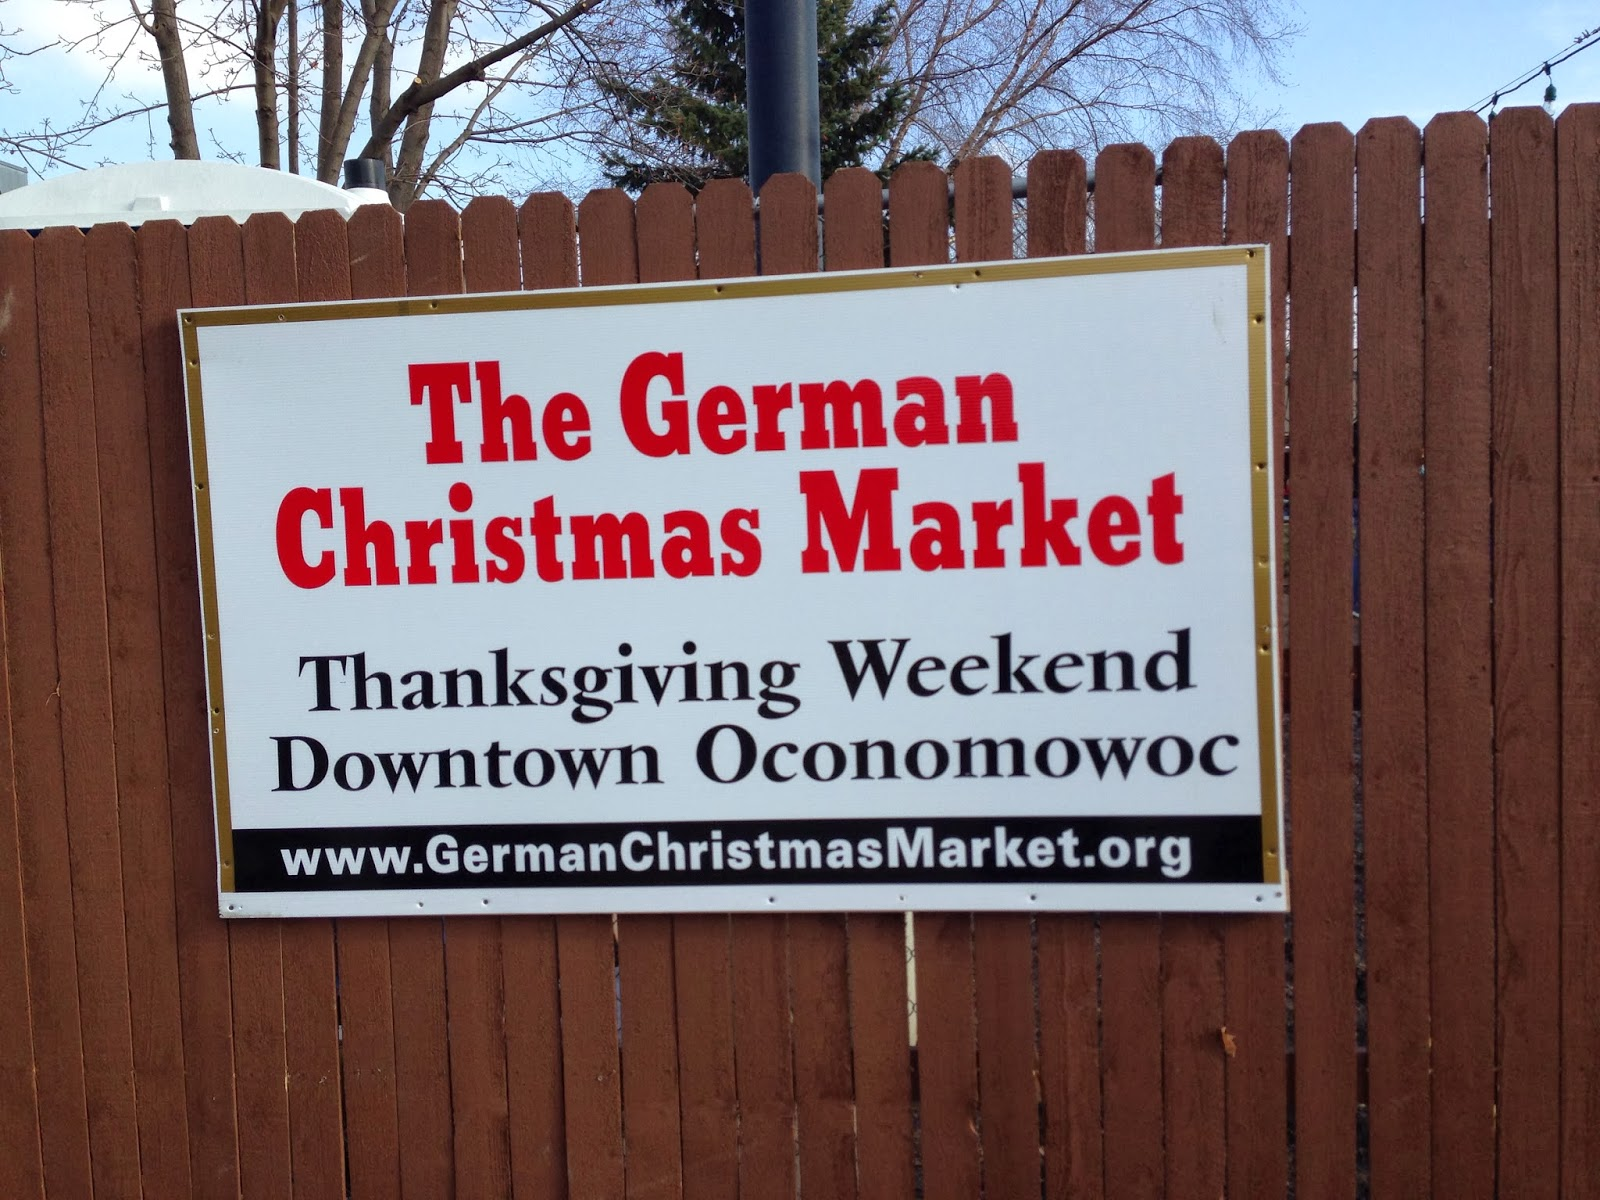 since i love german christmas markets and well germany in general i was excited to attend one this year next year milwaukee will be getting their own as - Oconomowoc Christmas Market